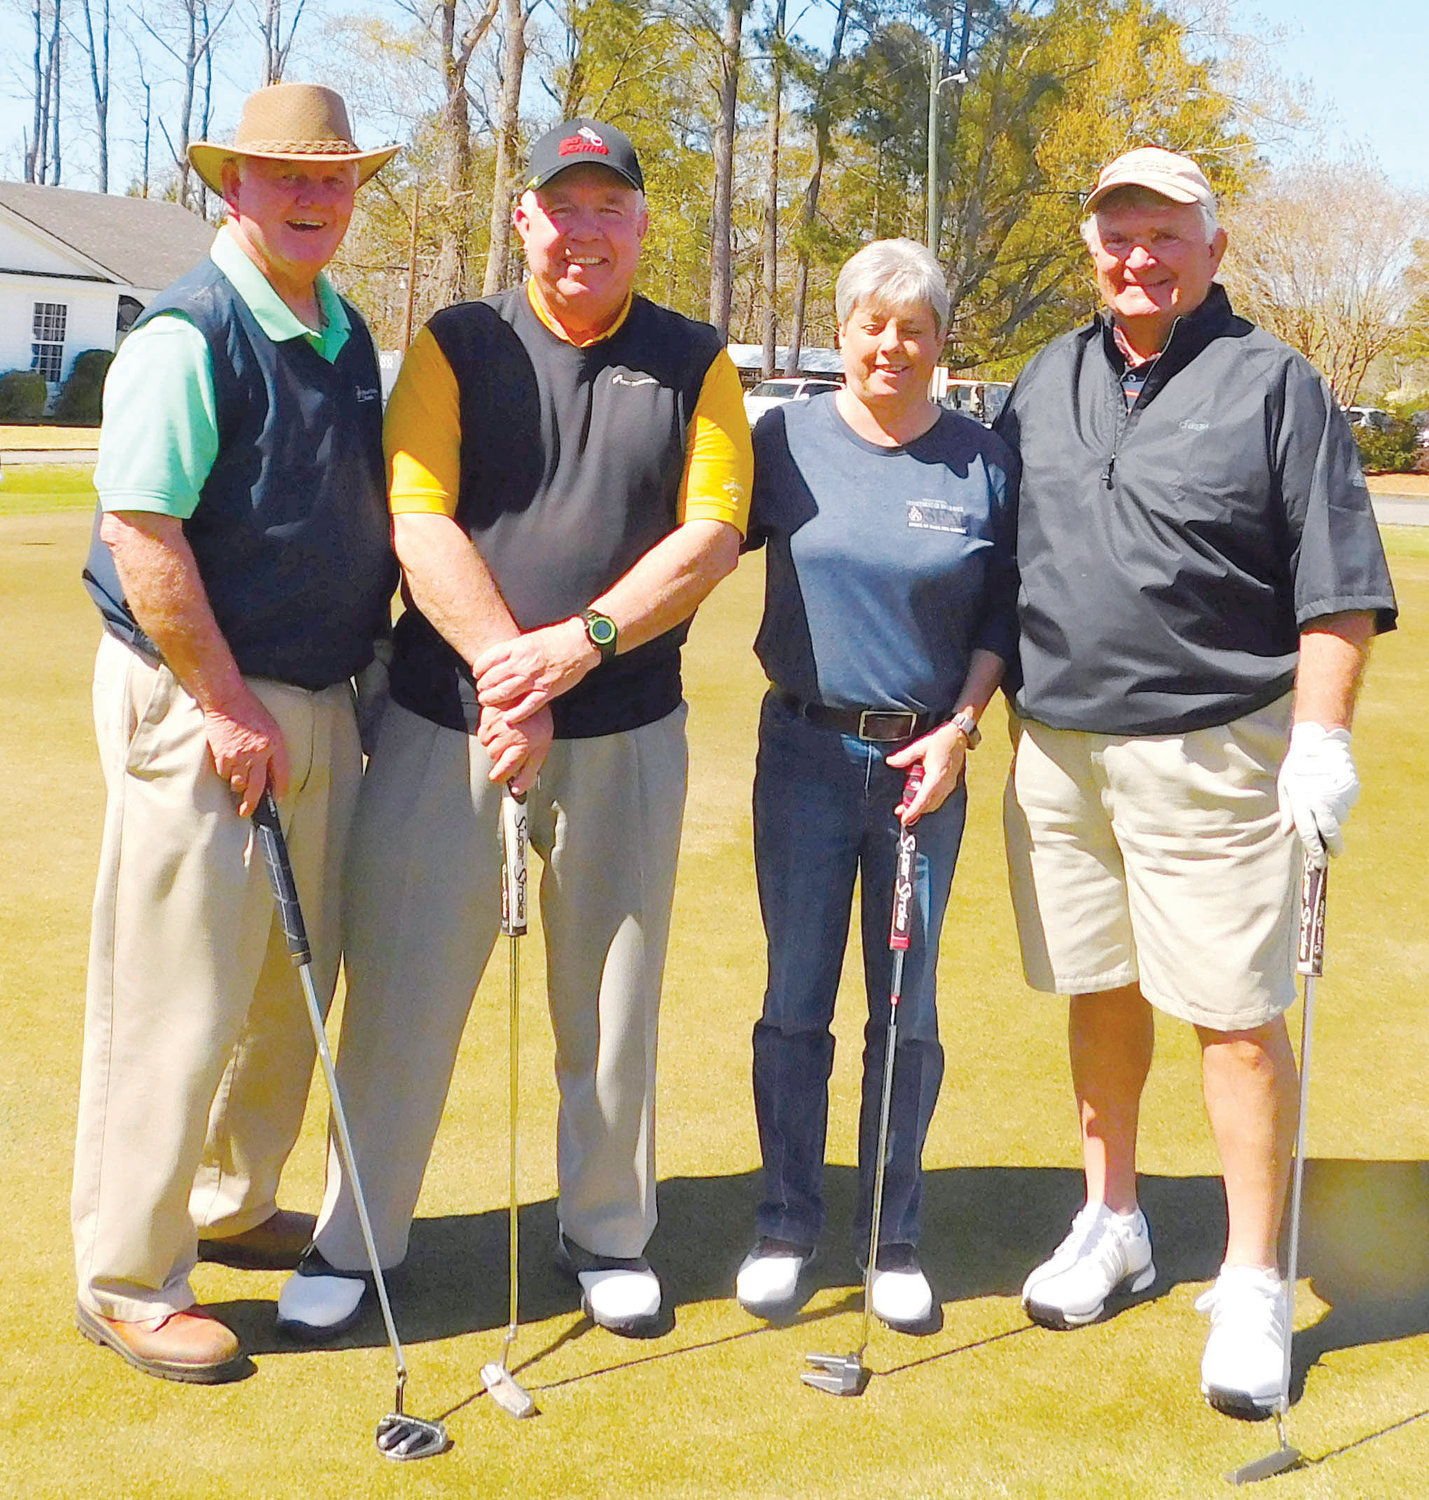 Members of the second flight winning team in the sixth Central Carolina Community College Foundation Harnett Golf Classic were Joe Tart, Gale Tart, Ronnie Jenkins and Darrell Smith.